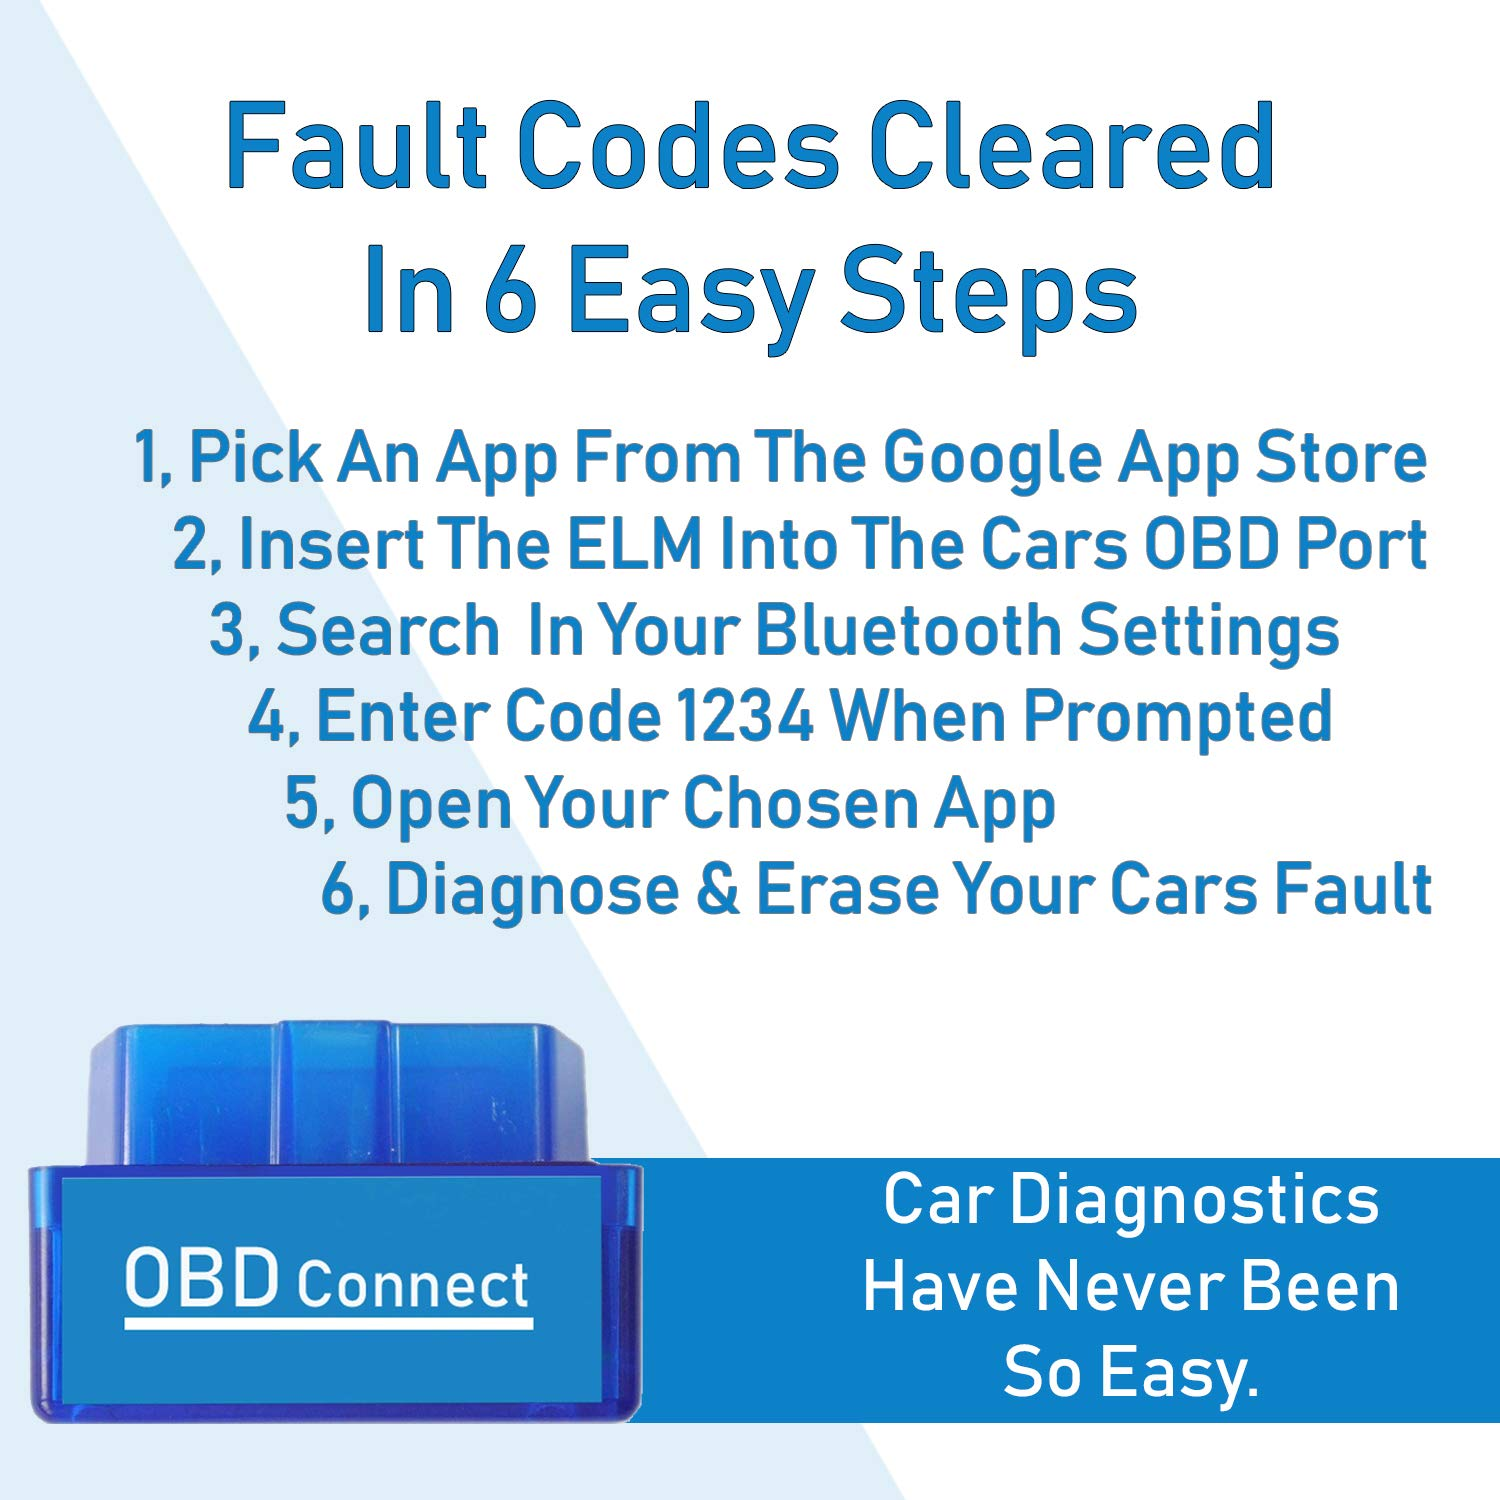 OBD Connect - OBDII OBD 2 Bluetooth Fault Code Reader For Use With Android  Devices